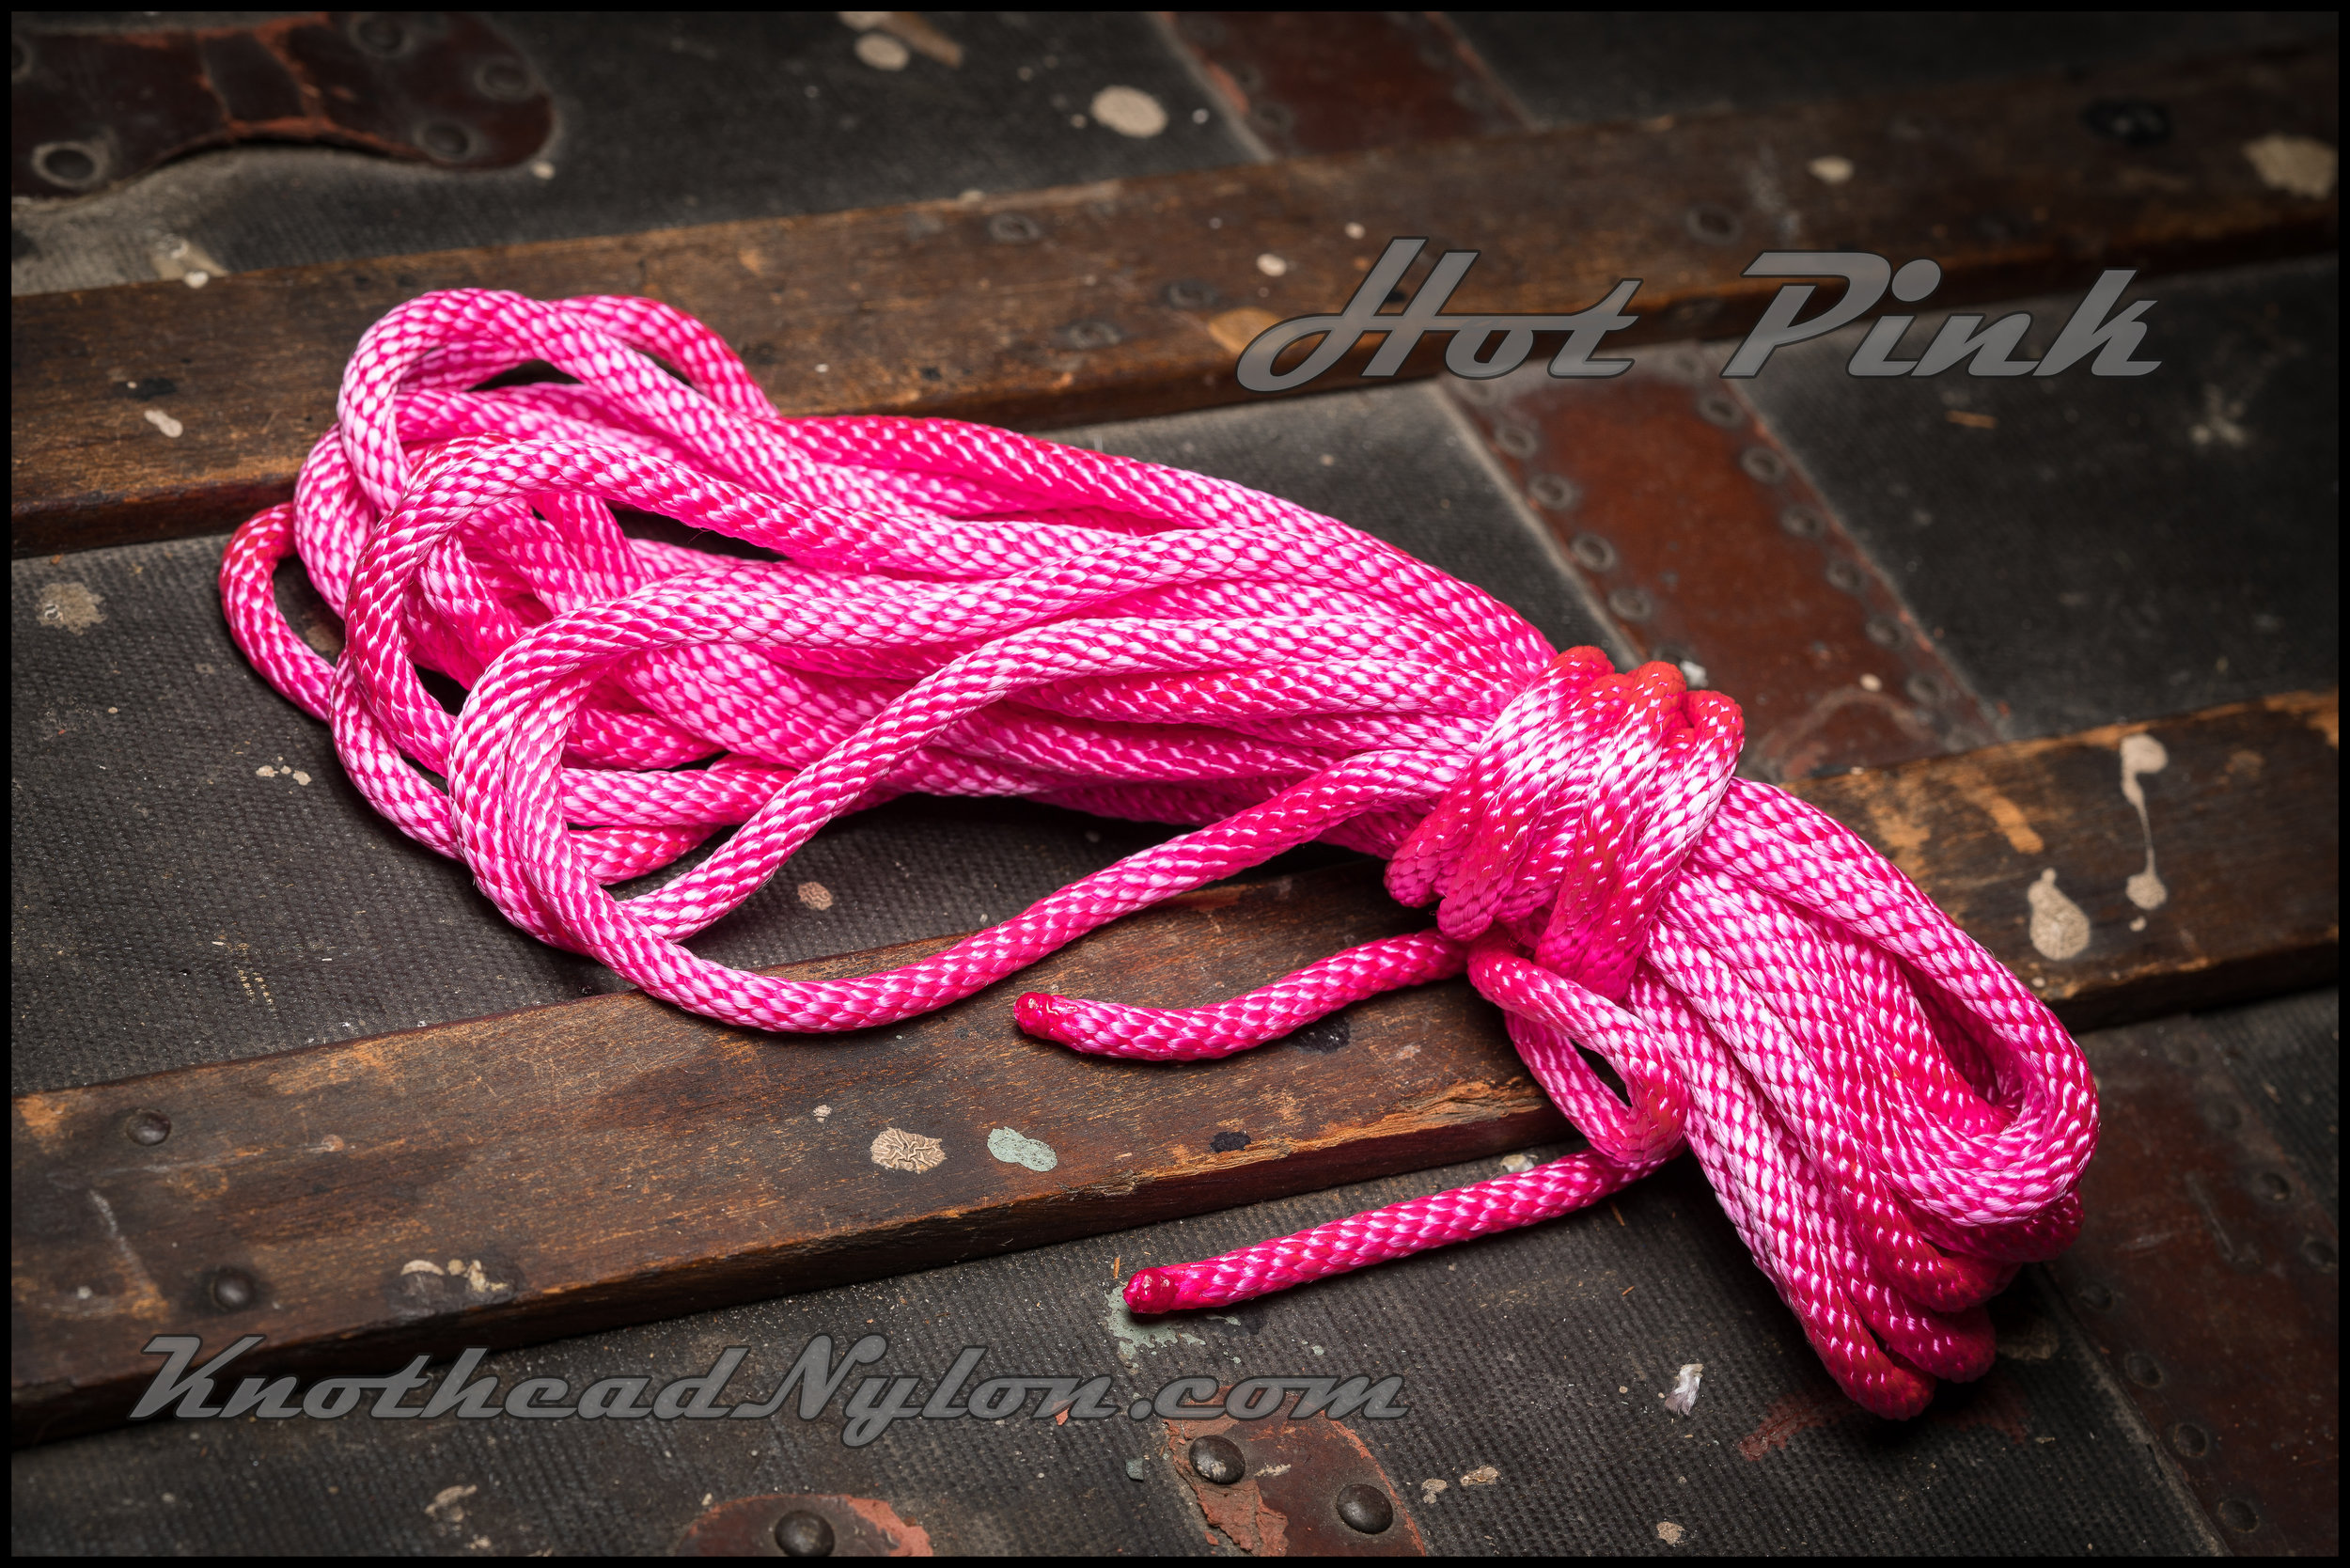 Knot head for web (103 of 113).jpg